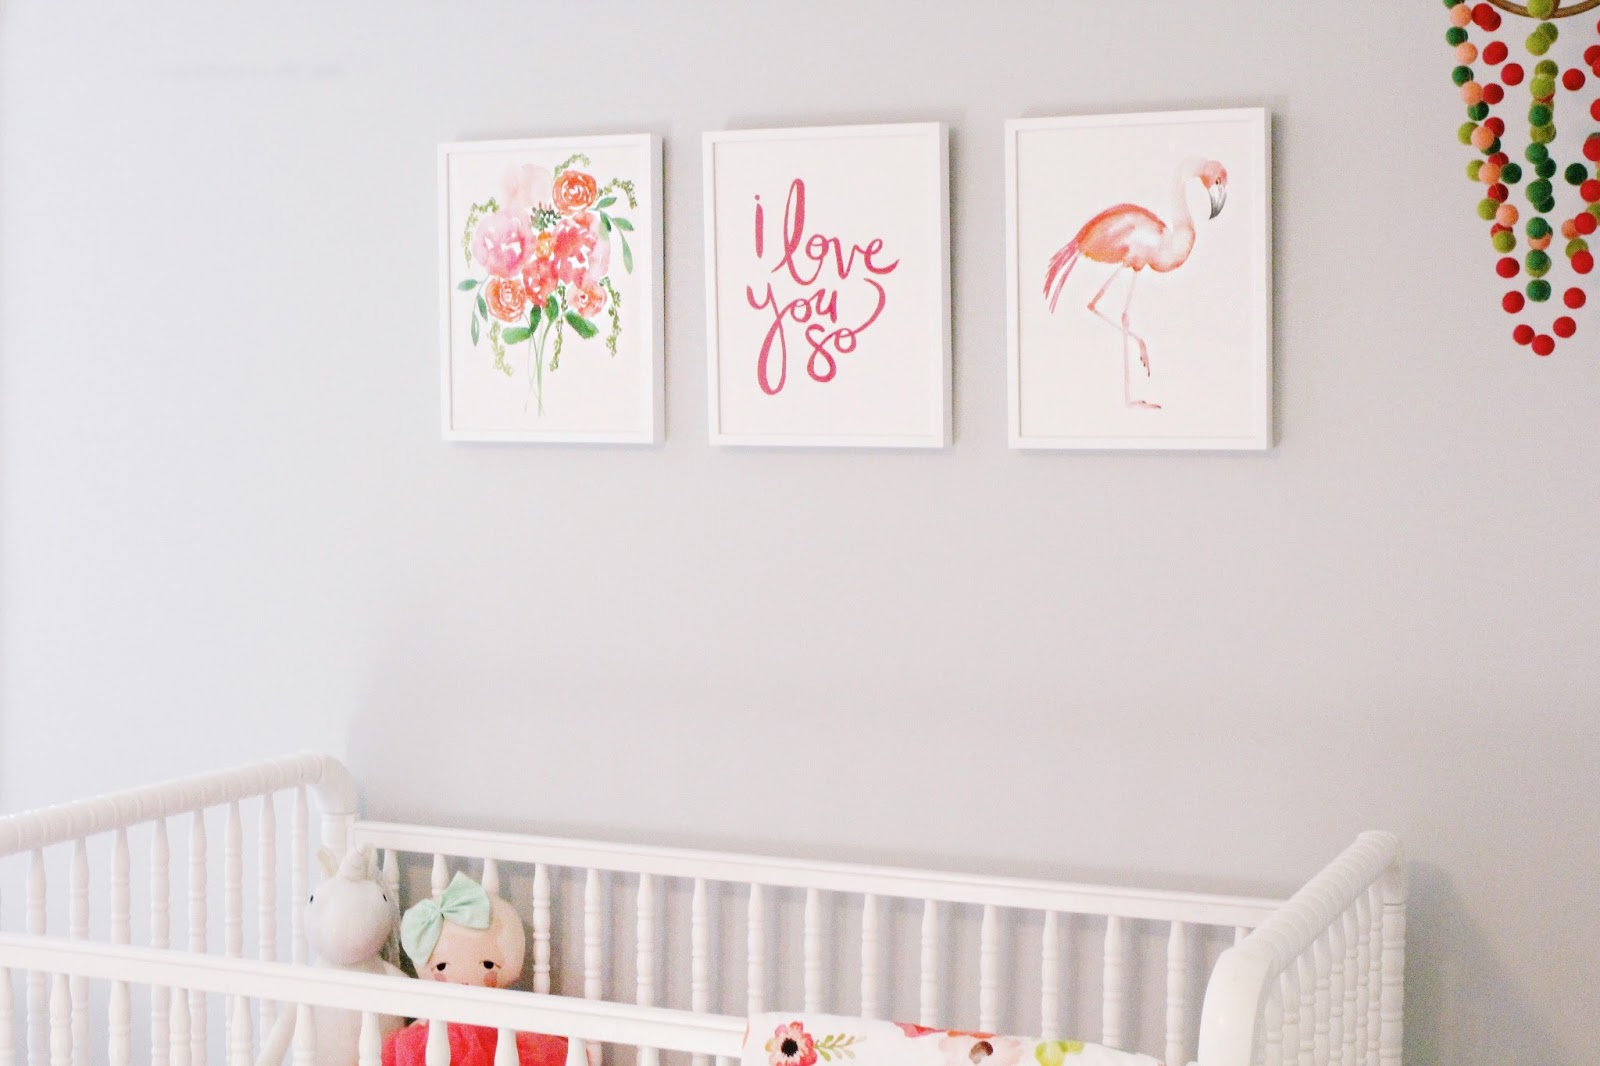 I Just Love The Colors Everything Is So Bright And Cheerful There S Whimsy Yet It Doesn T Scream Baby Nursery M Sure She Ll Have This Artwork For A